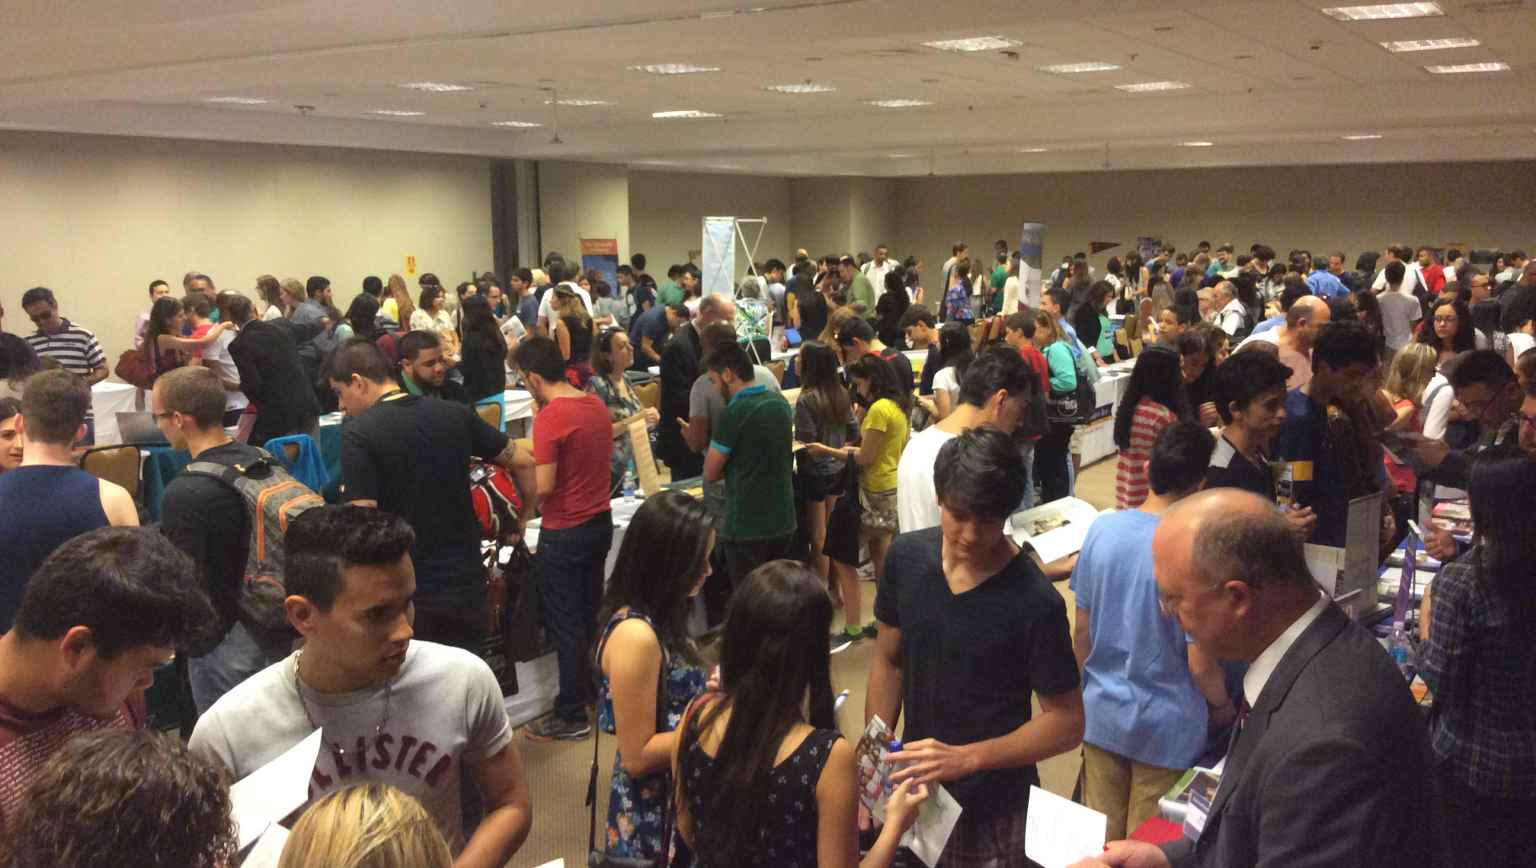 EducationUSA Fair in Brasilia, Brazil for internation study opportunites